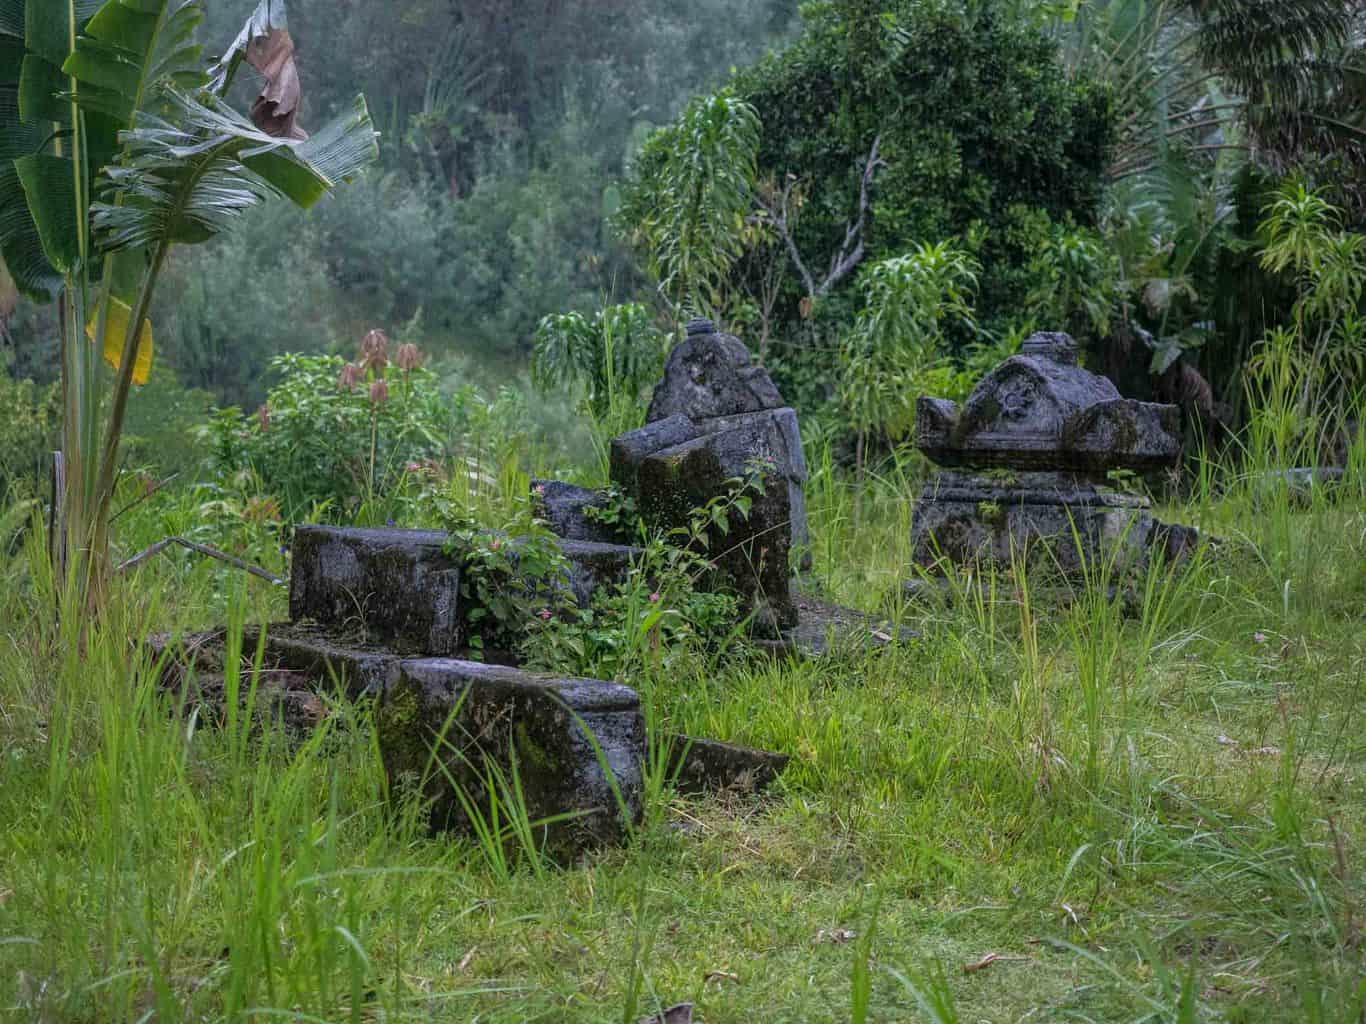 real pirate grave stones in Madagascar